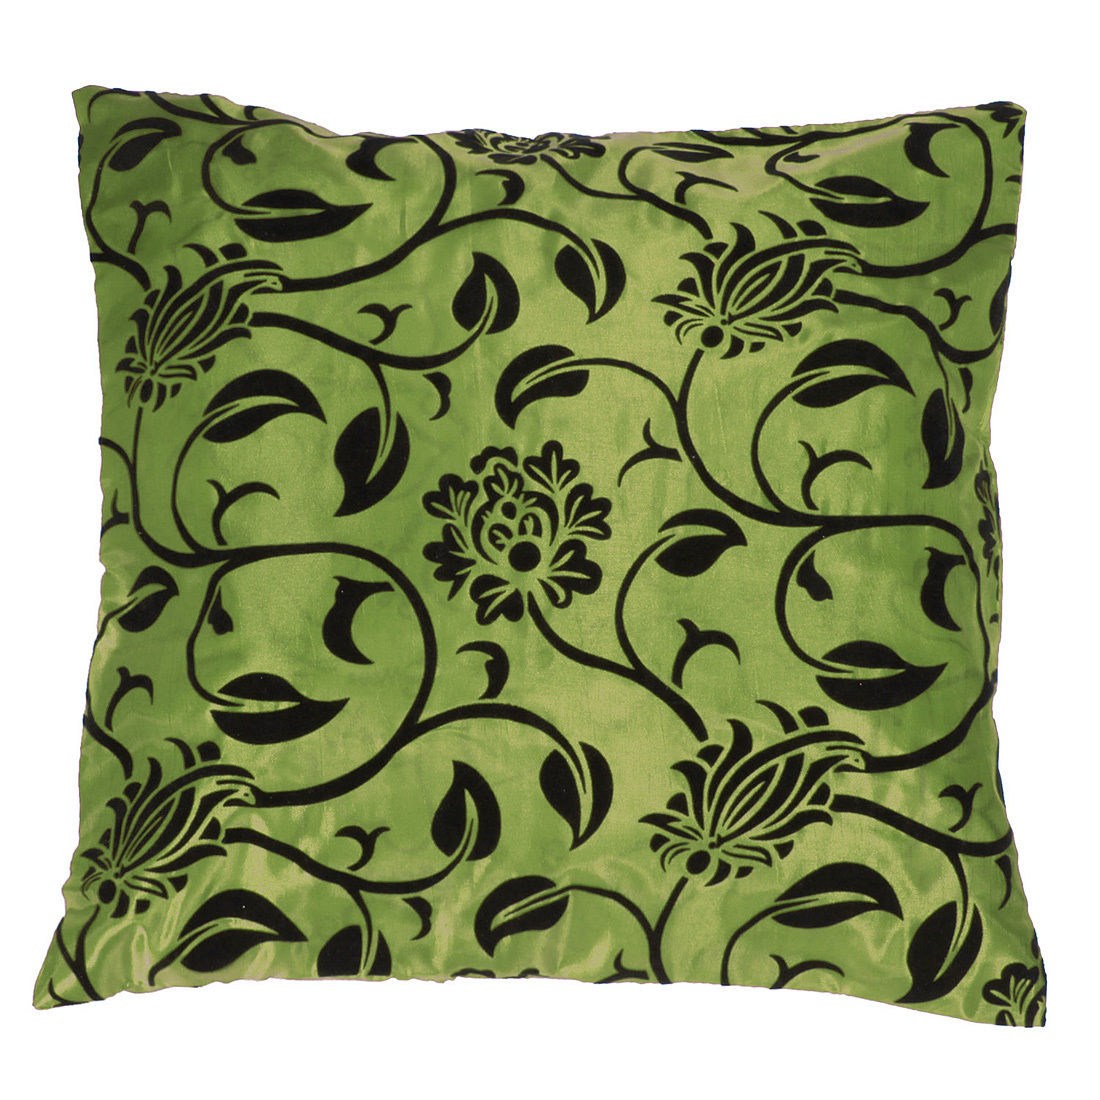 Vintage Pillow Case Cushion Covers Home Sofa Decor Pattern:#6 green